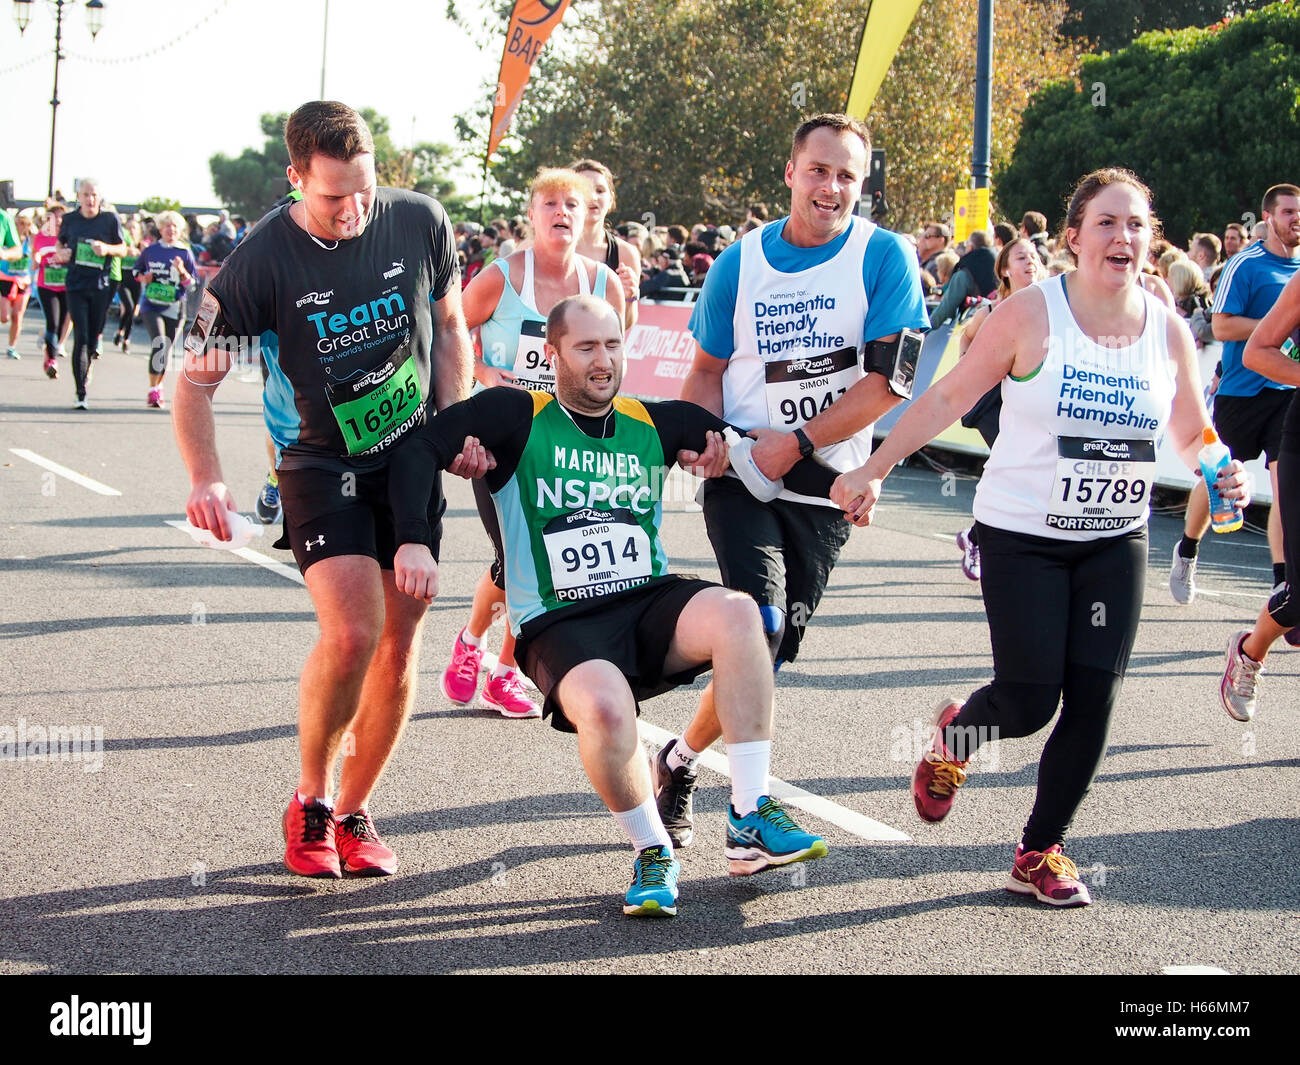 an-exhausted-runner-is-helped-towards-the-finish-line-of-the-great-H66MM7.jpg